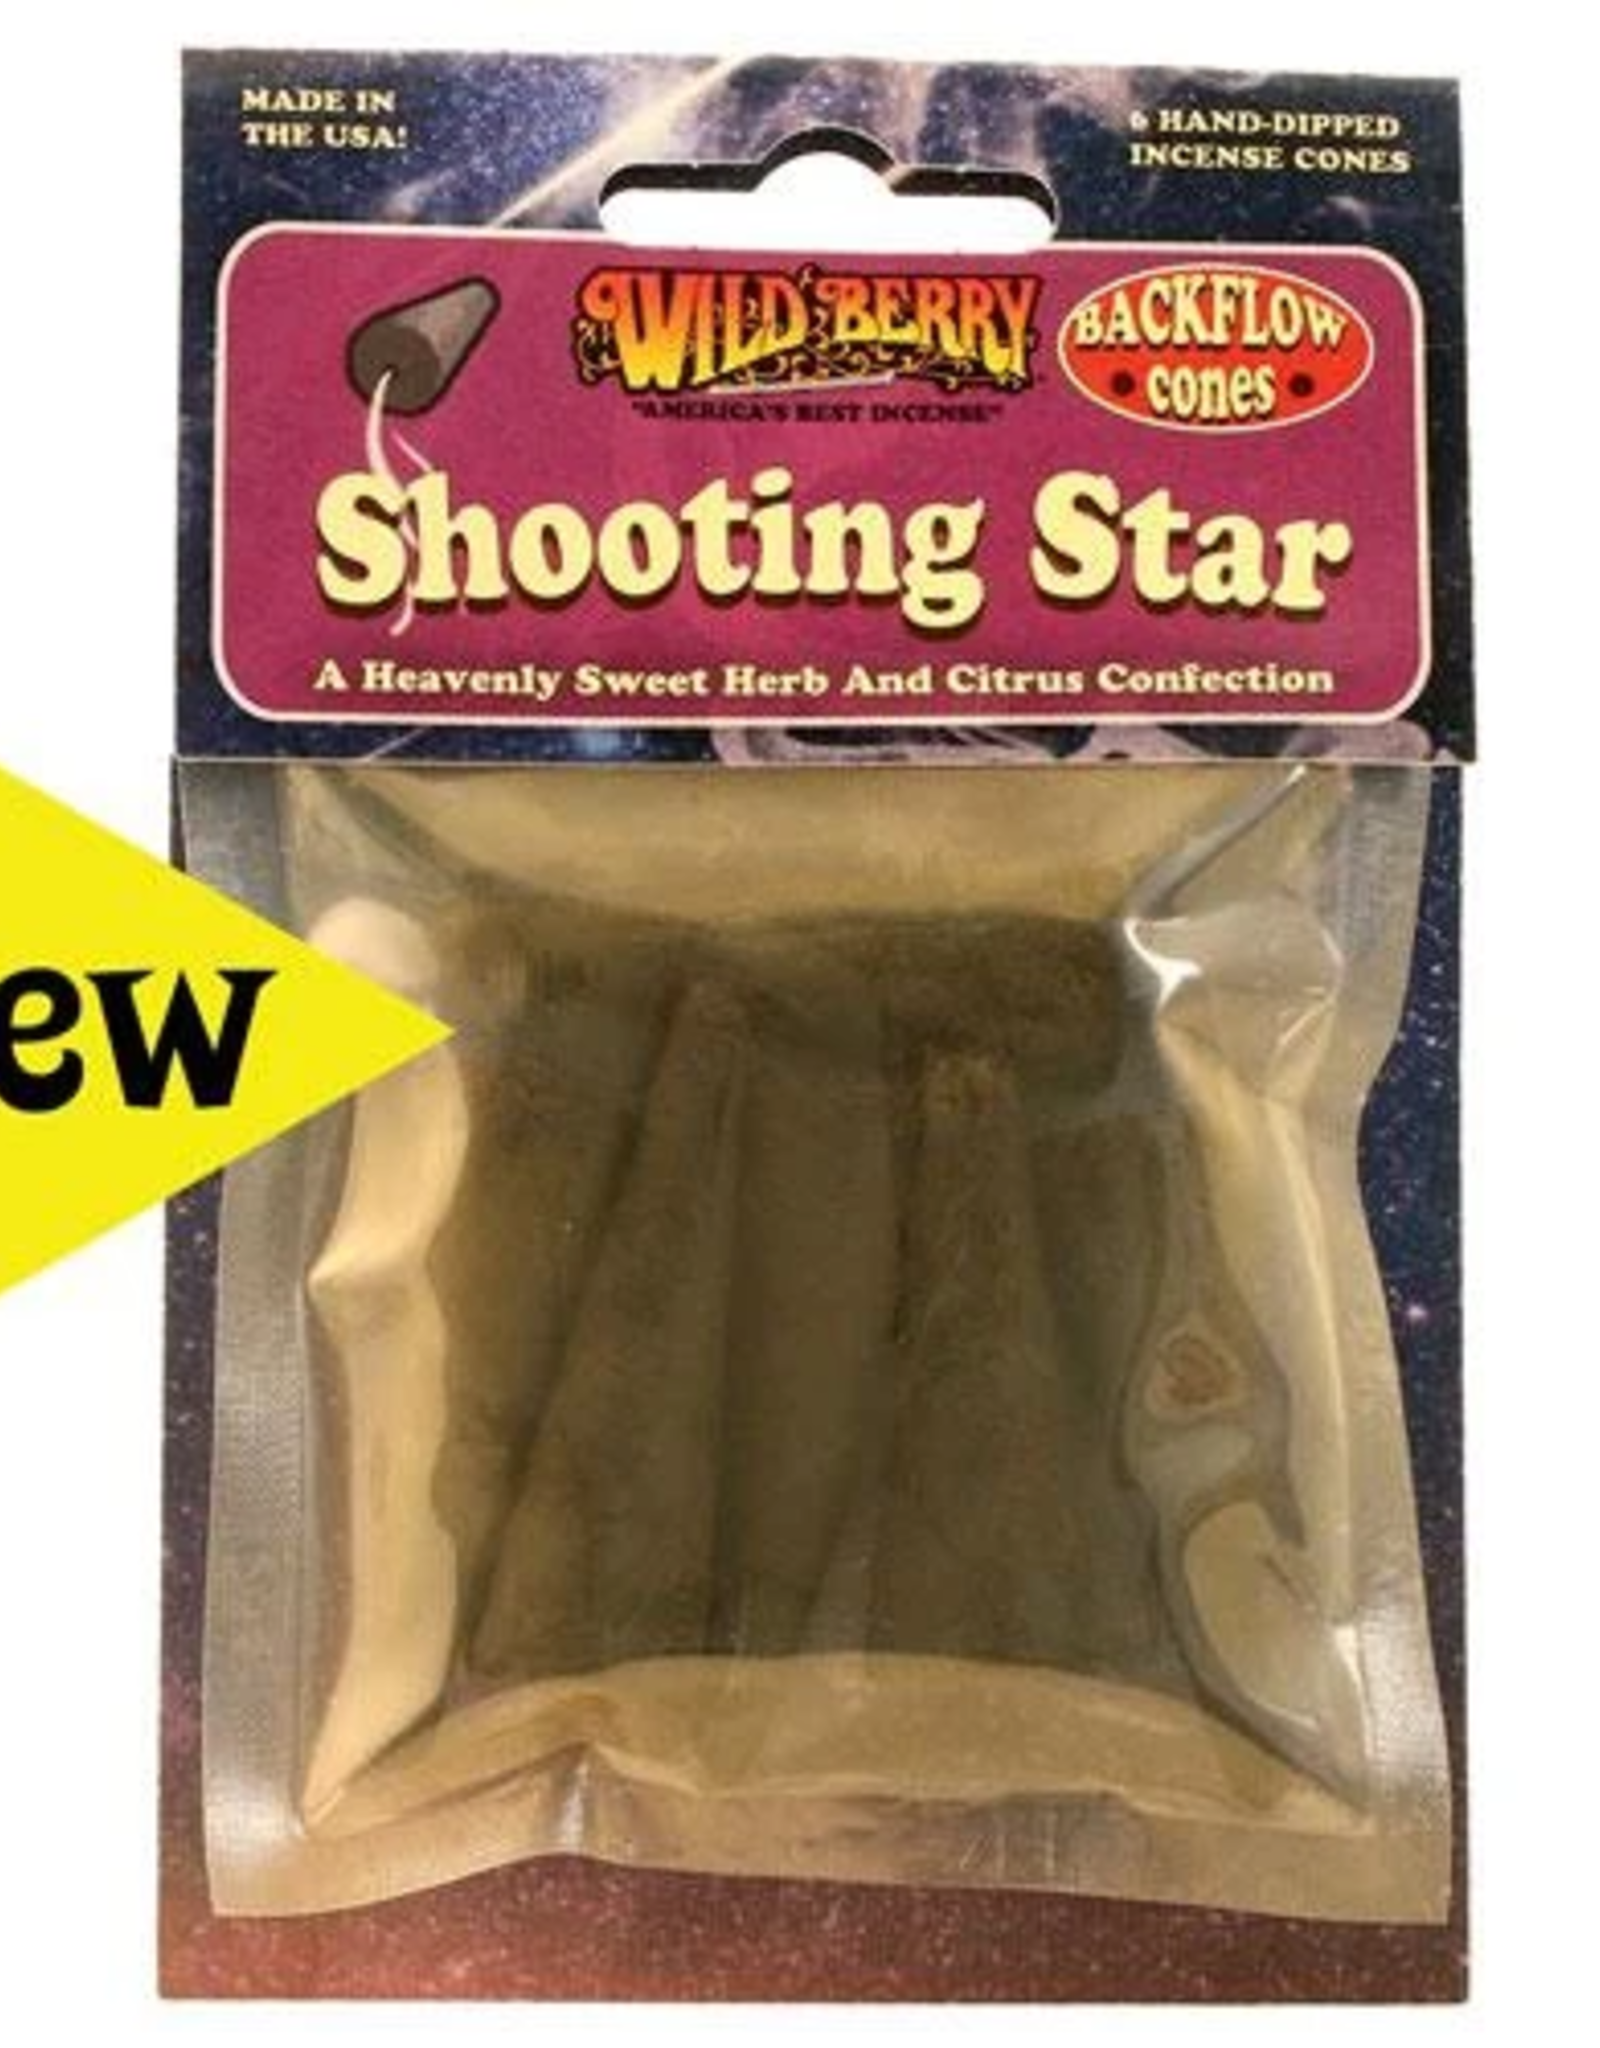 Wildberry-Shooting Star Incense Cone